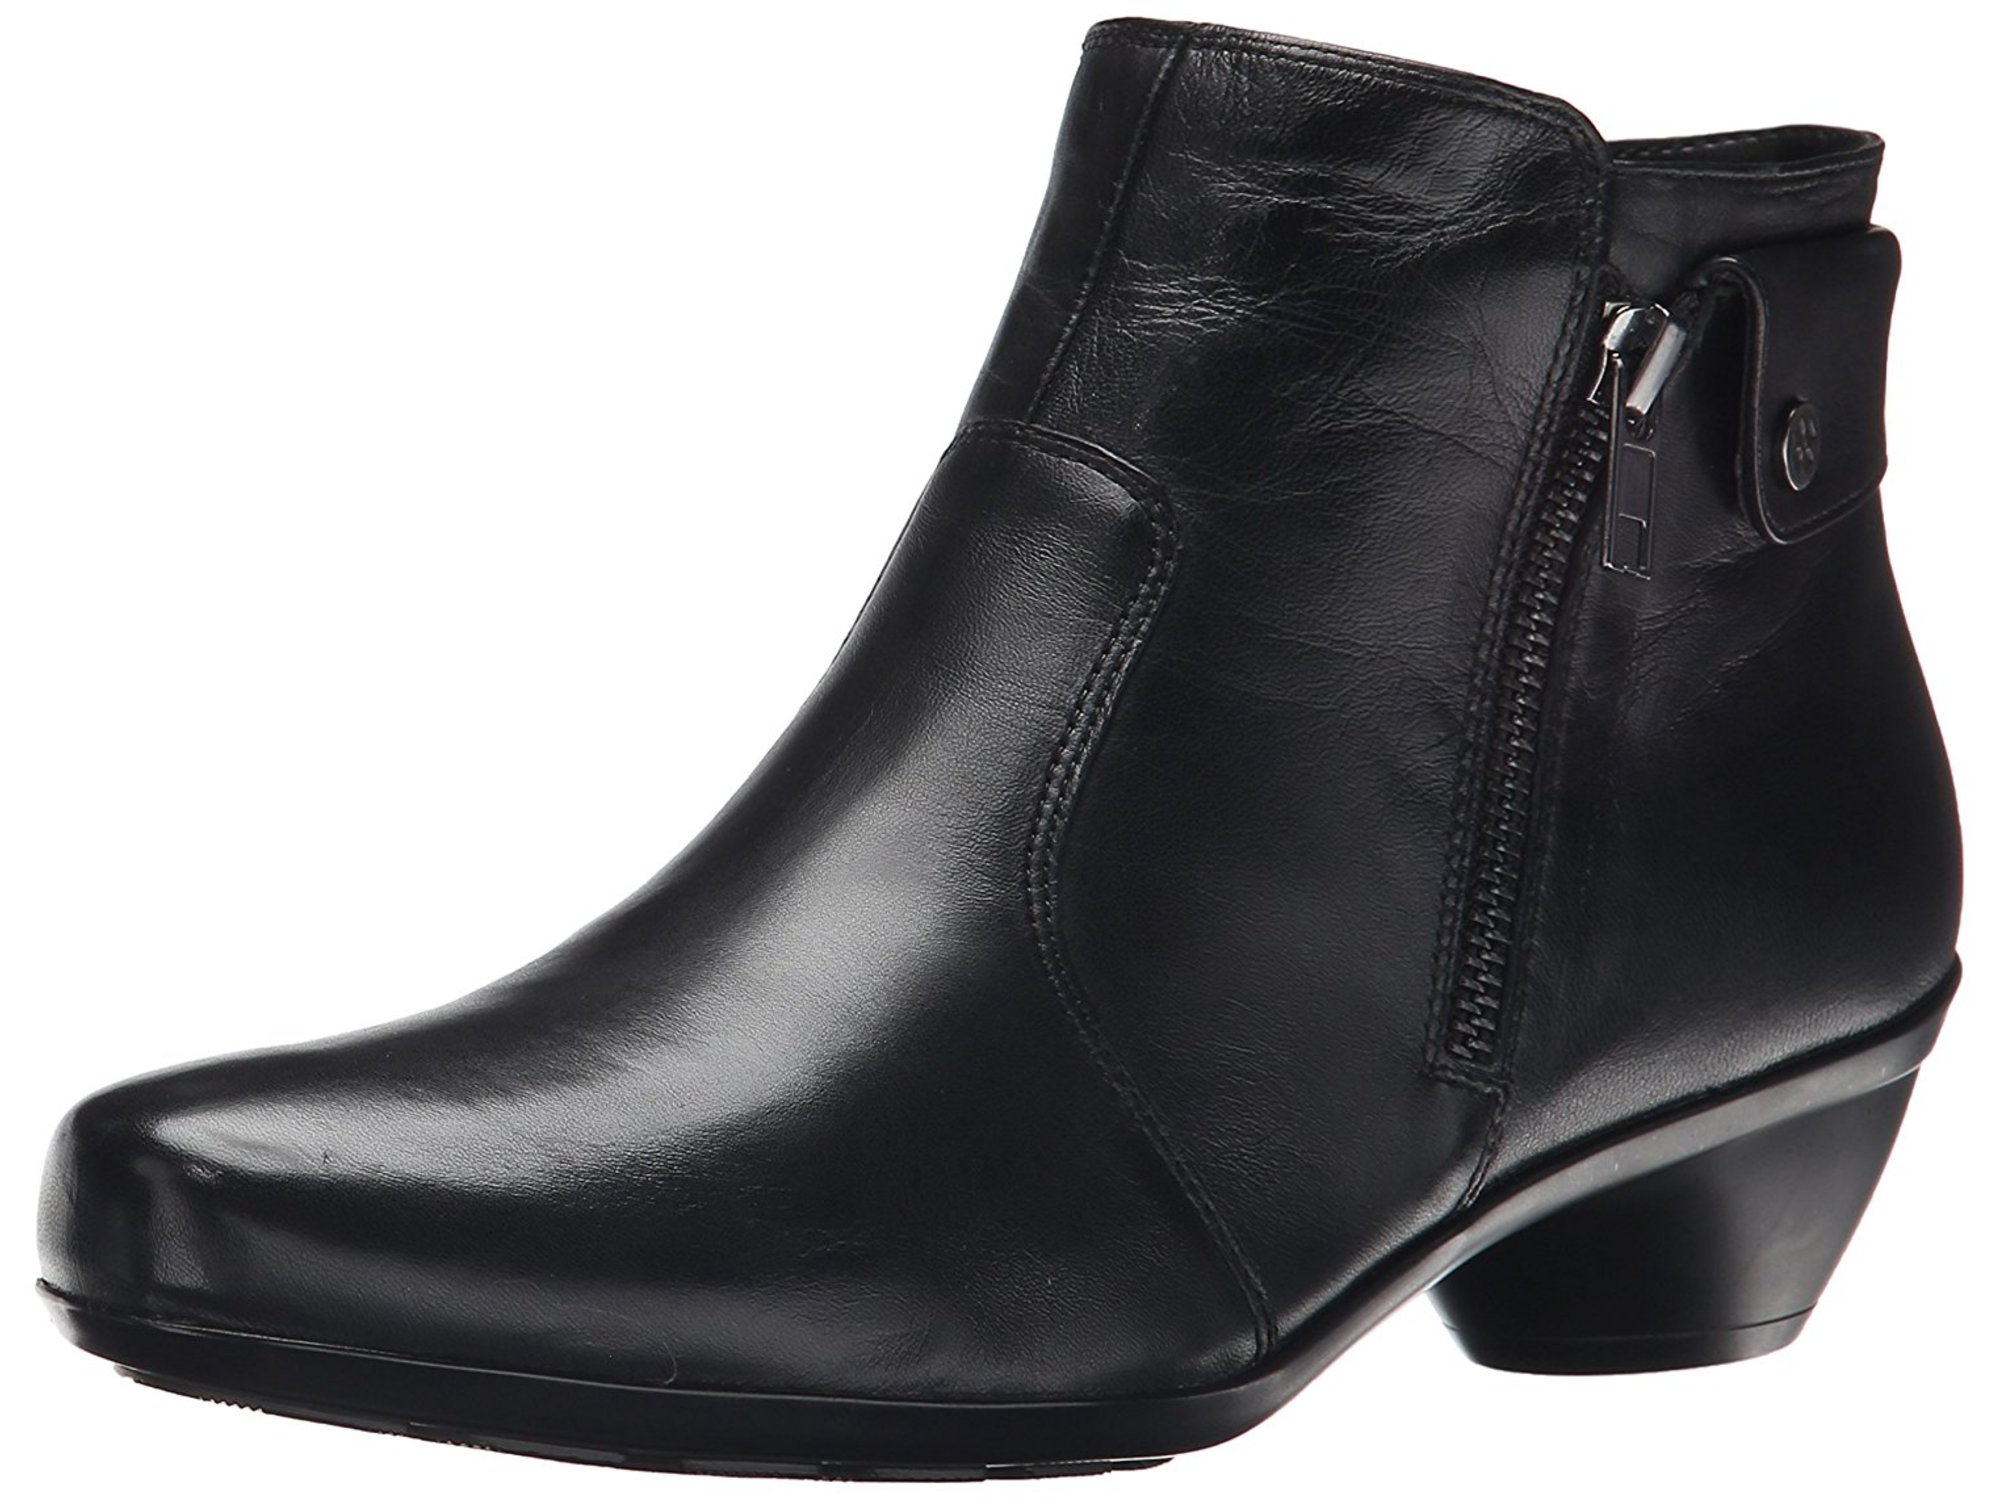 Naturalizer Haley W Round Toe Leather Bootie by Naturalizer